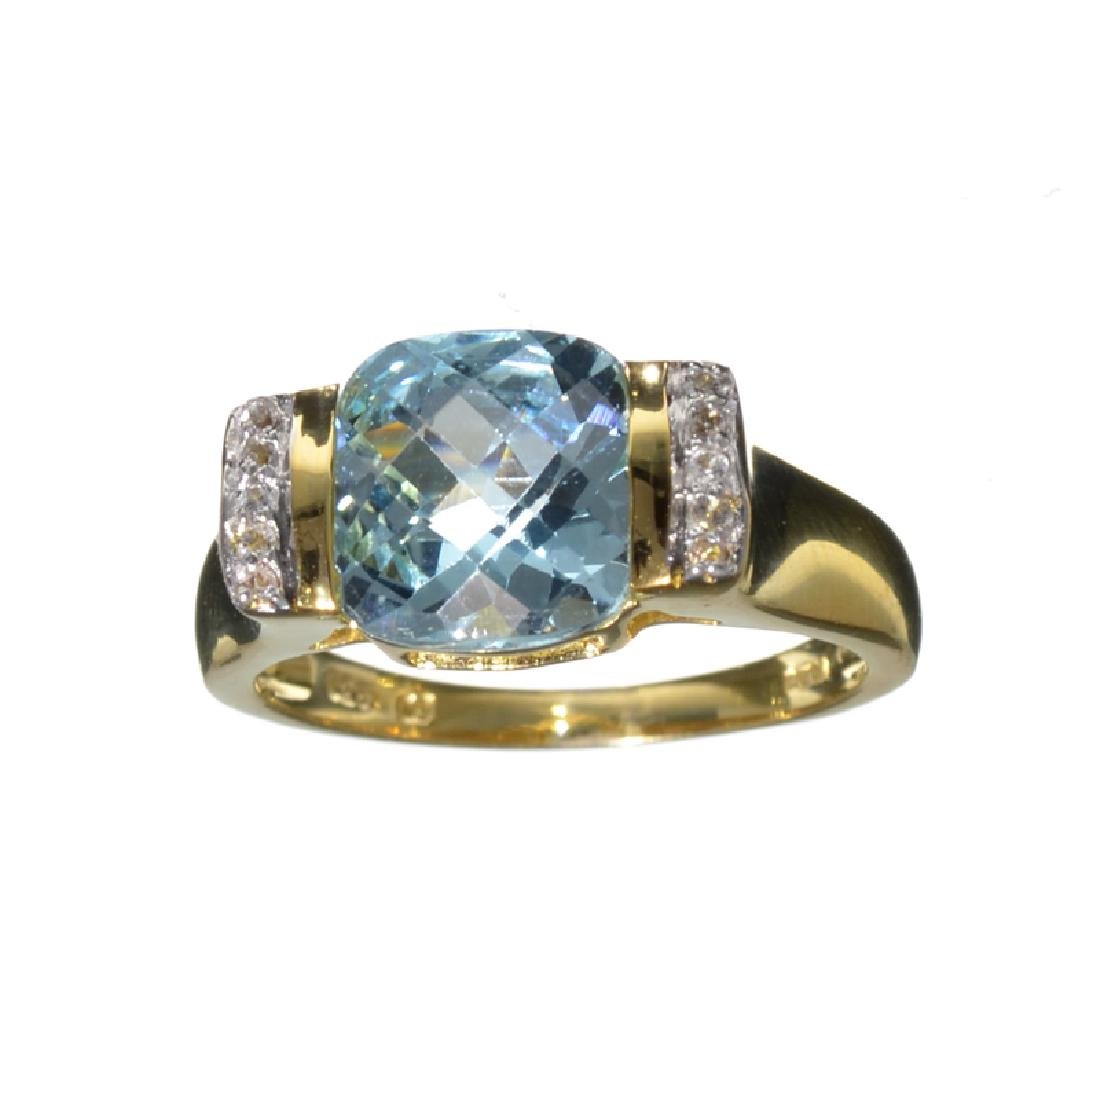 Fine Jewelry 4.15CT Blue Topaz And White Sapphire W a